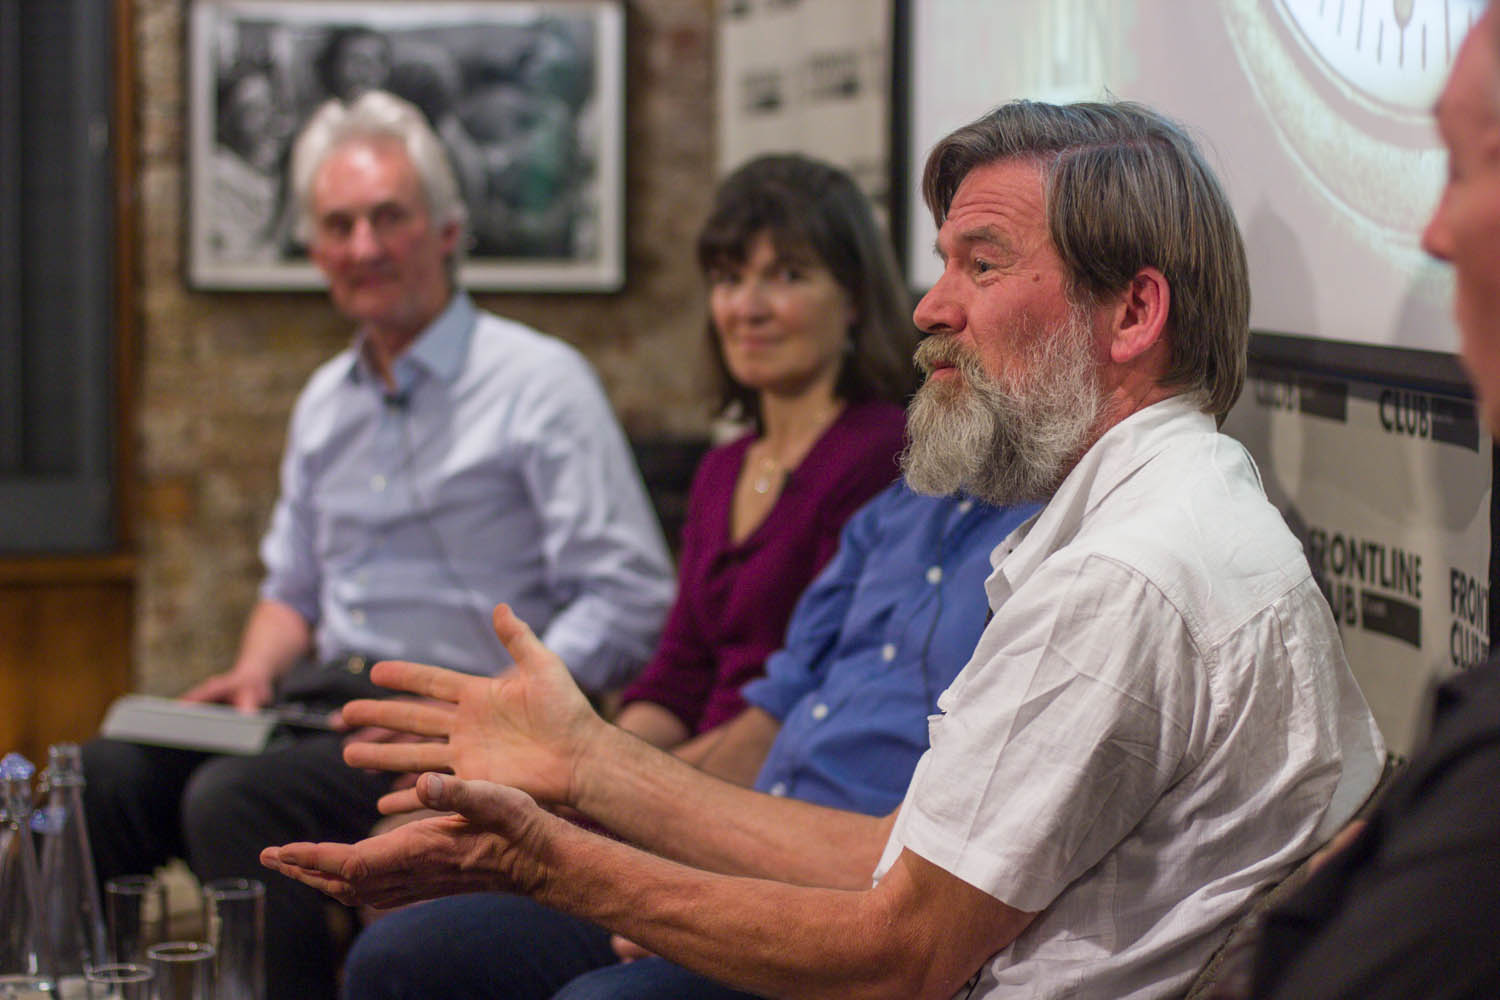 Tolly Robinson SES Illegal Wildlife Trafficking Frontline Club